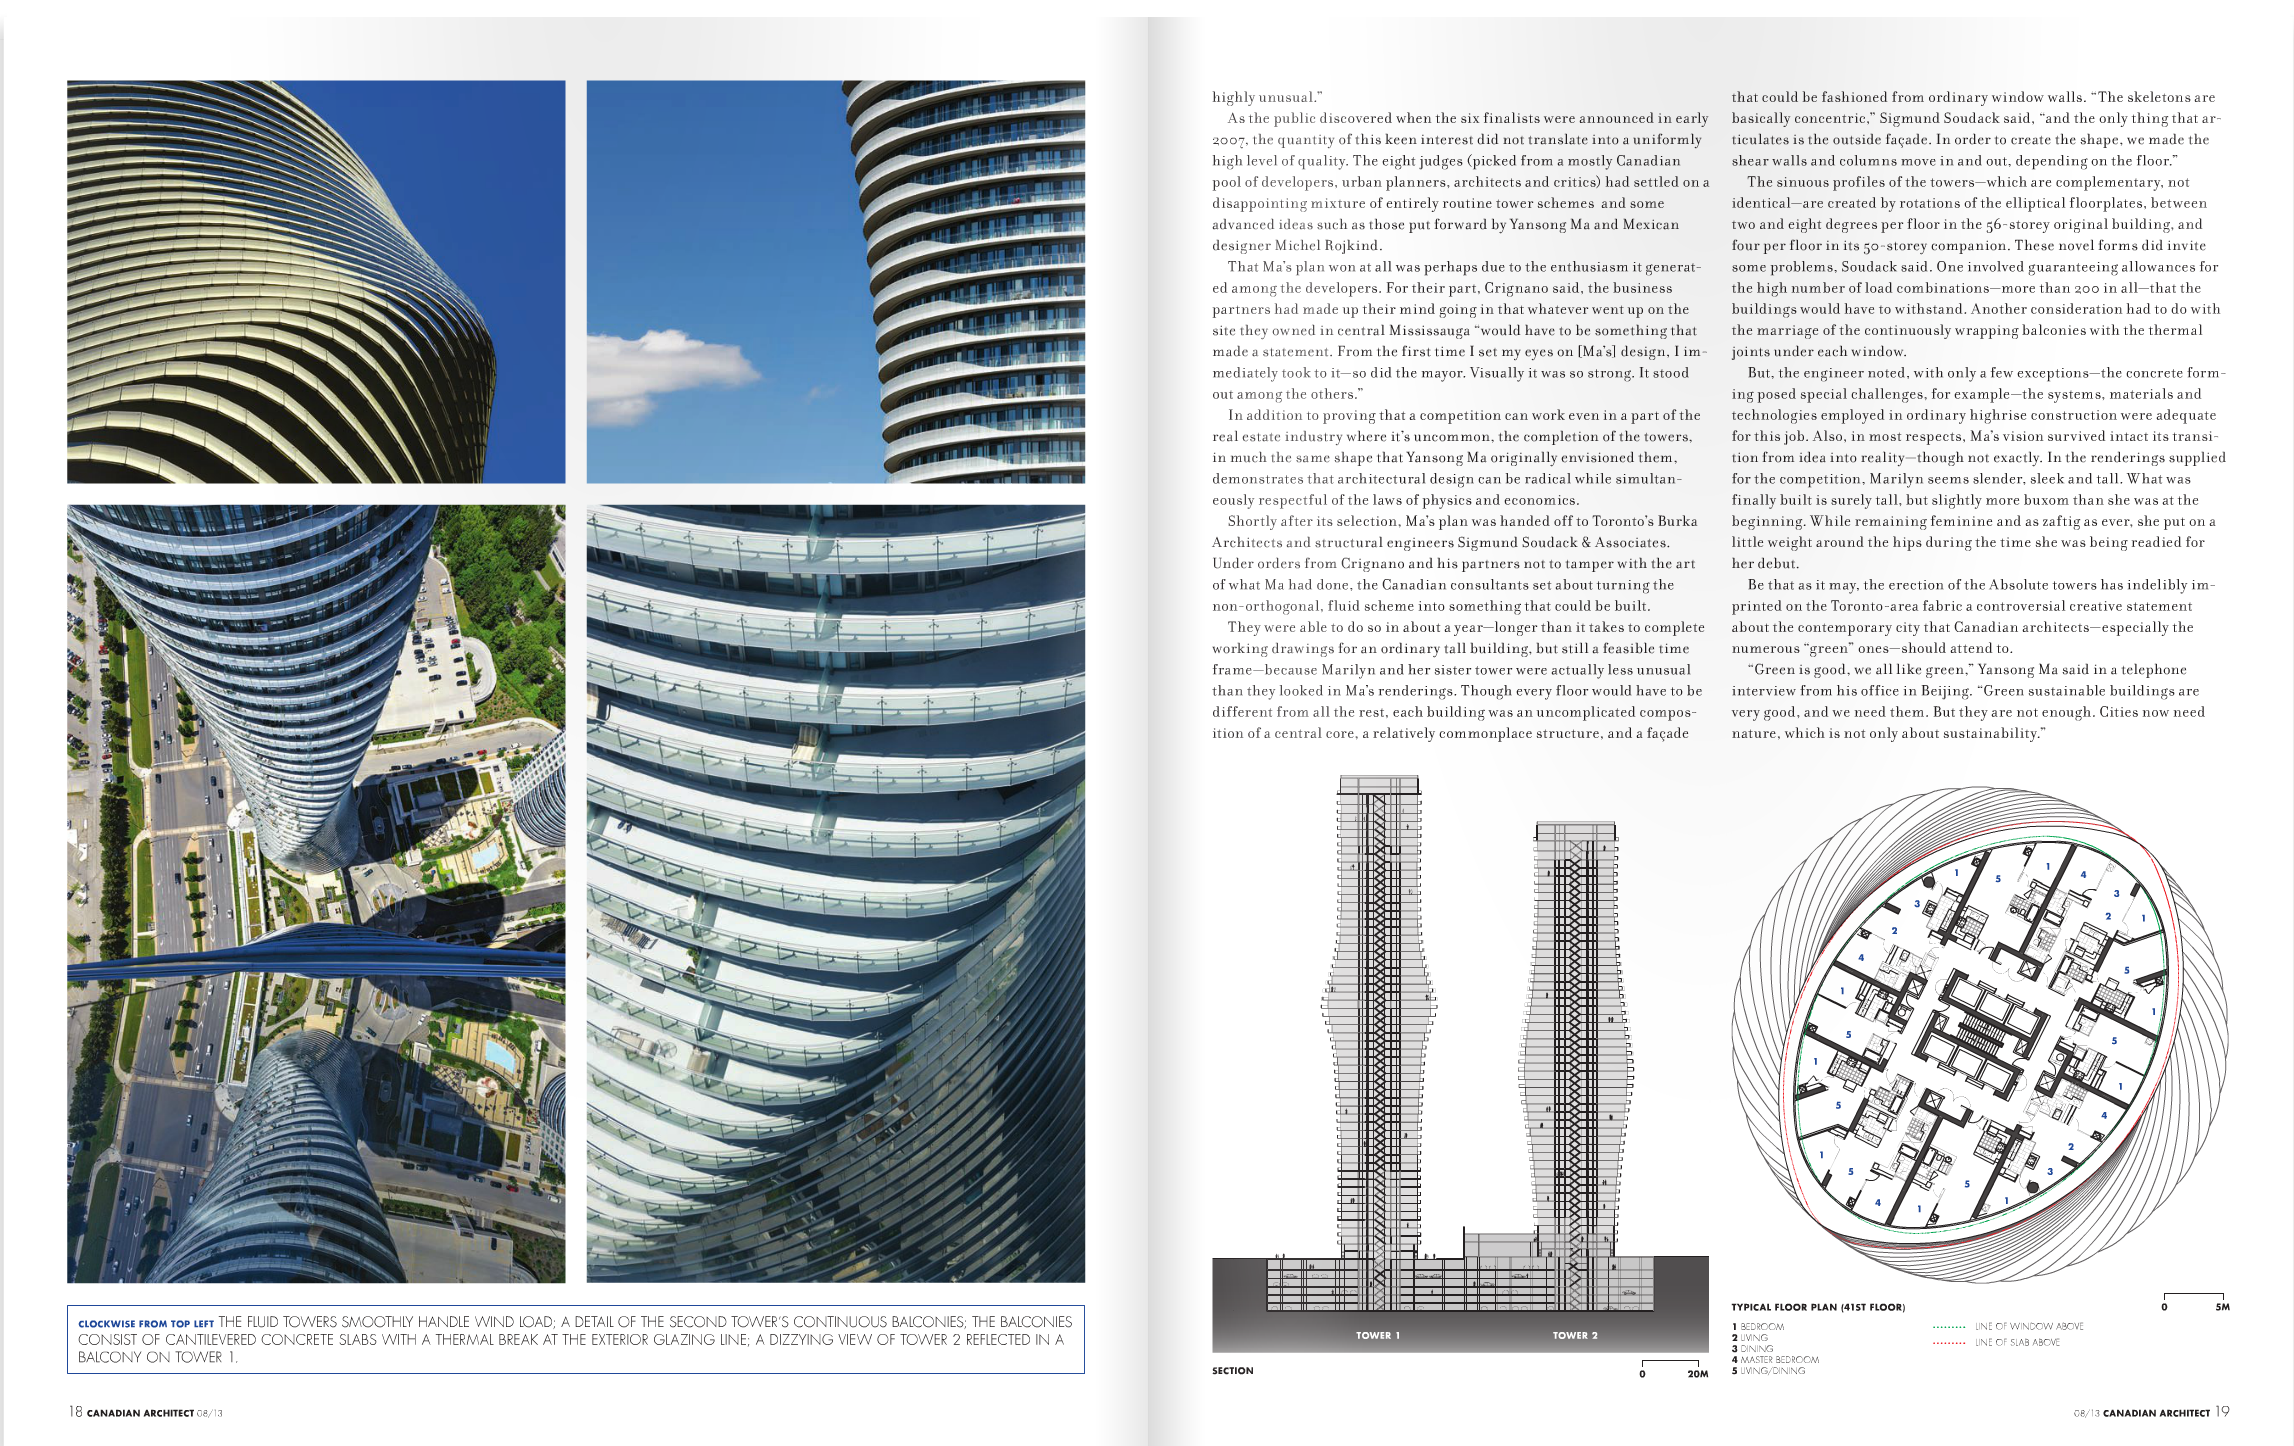 Canadian Architect August 2013 -inside 2